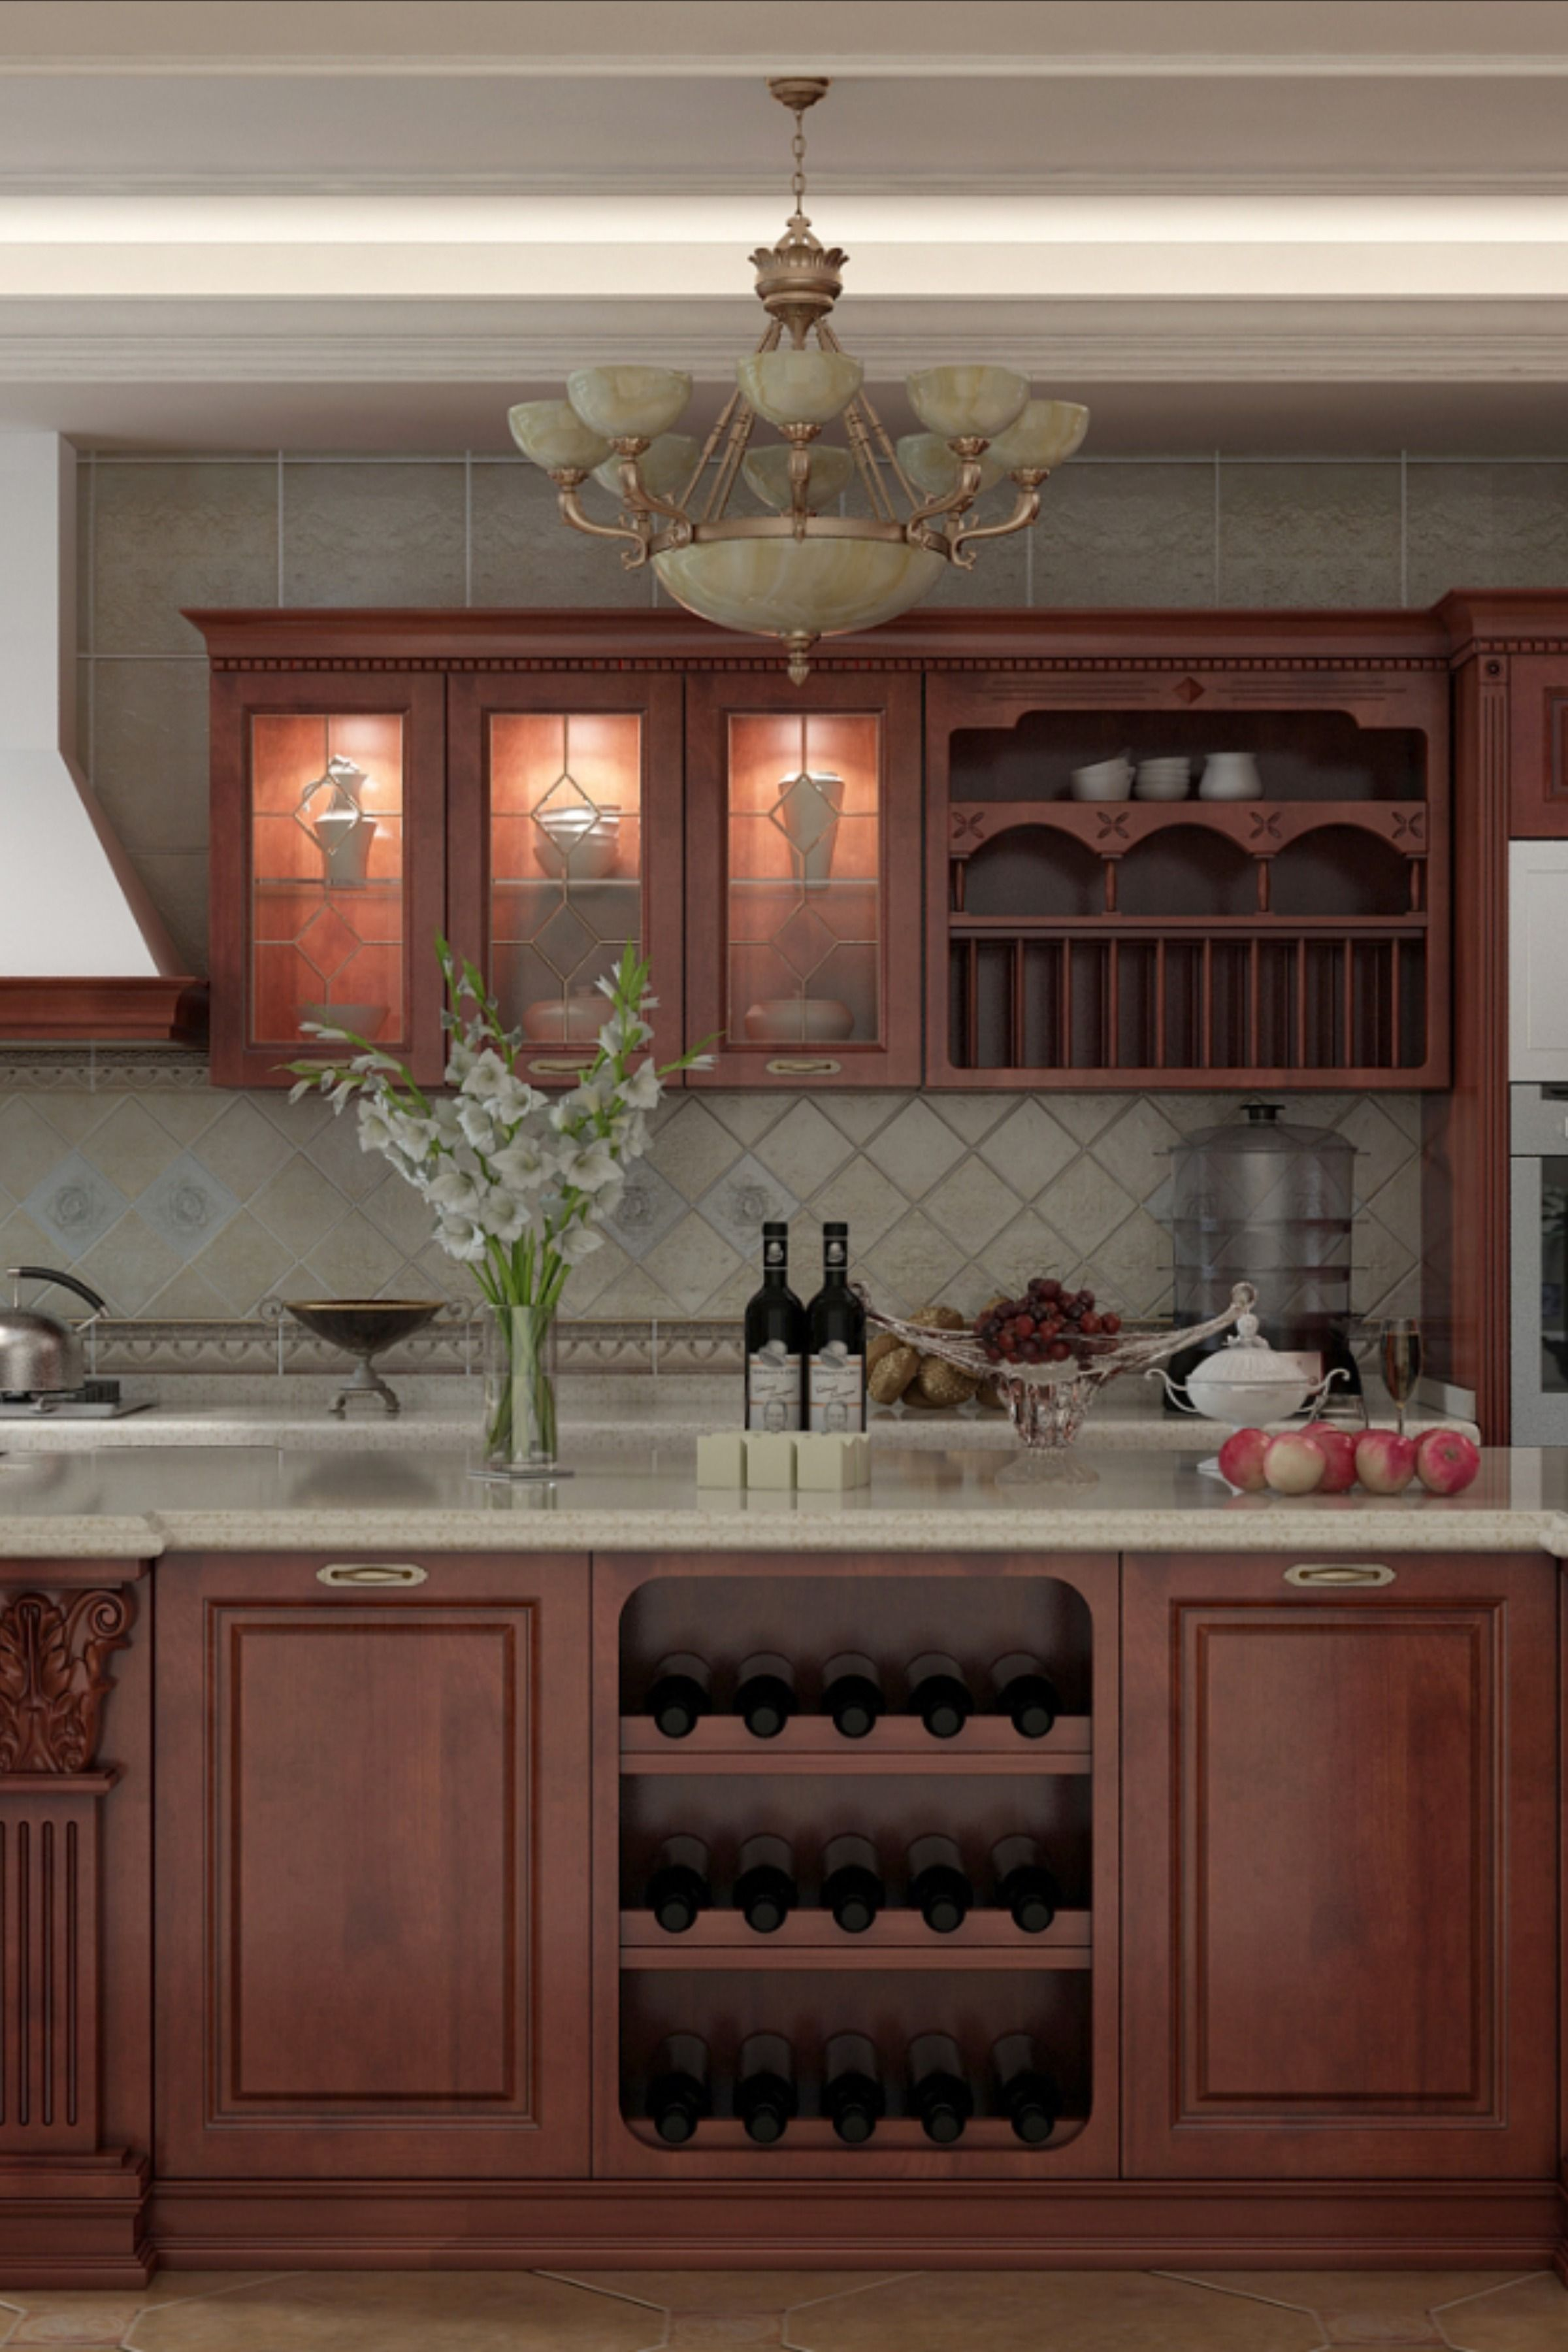 Classic Solid Wood Kitchen Cabinet Georgebuildings In 2020 Solid Wood Kitchen Cabinets Wood Kitchen Cabinets Kitchen Cabinets